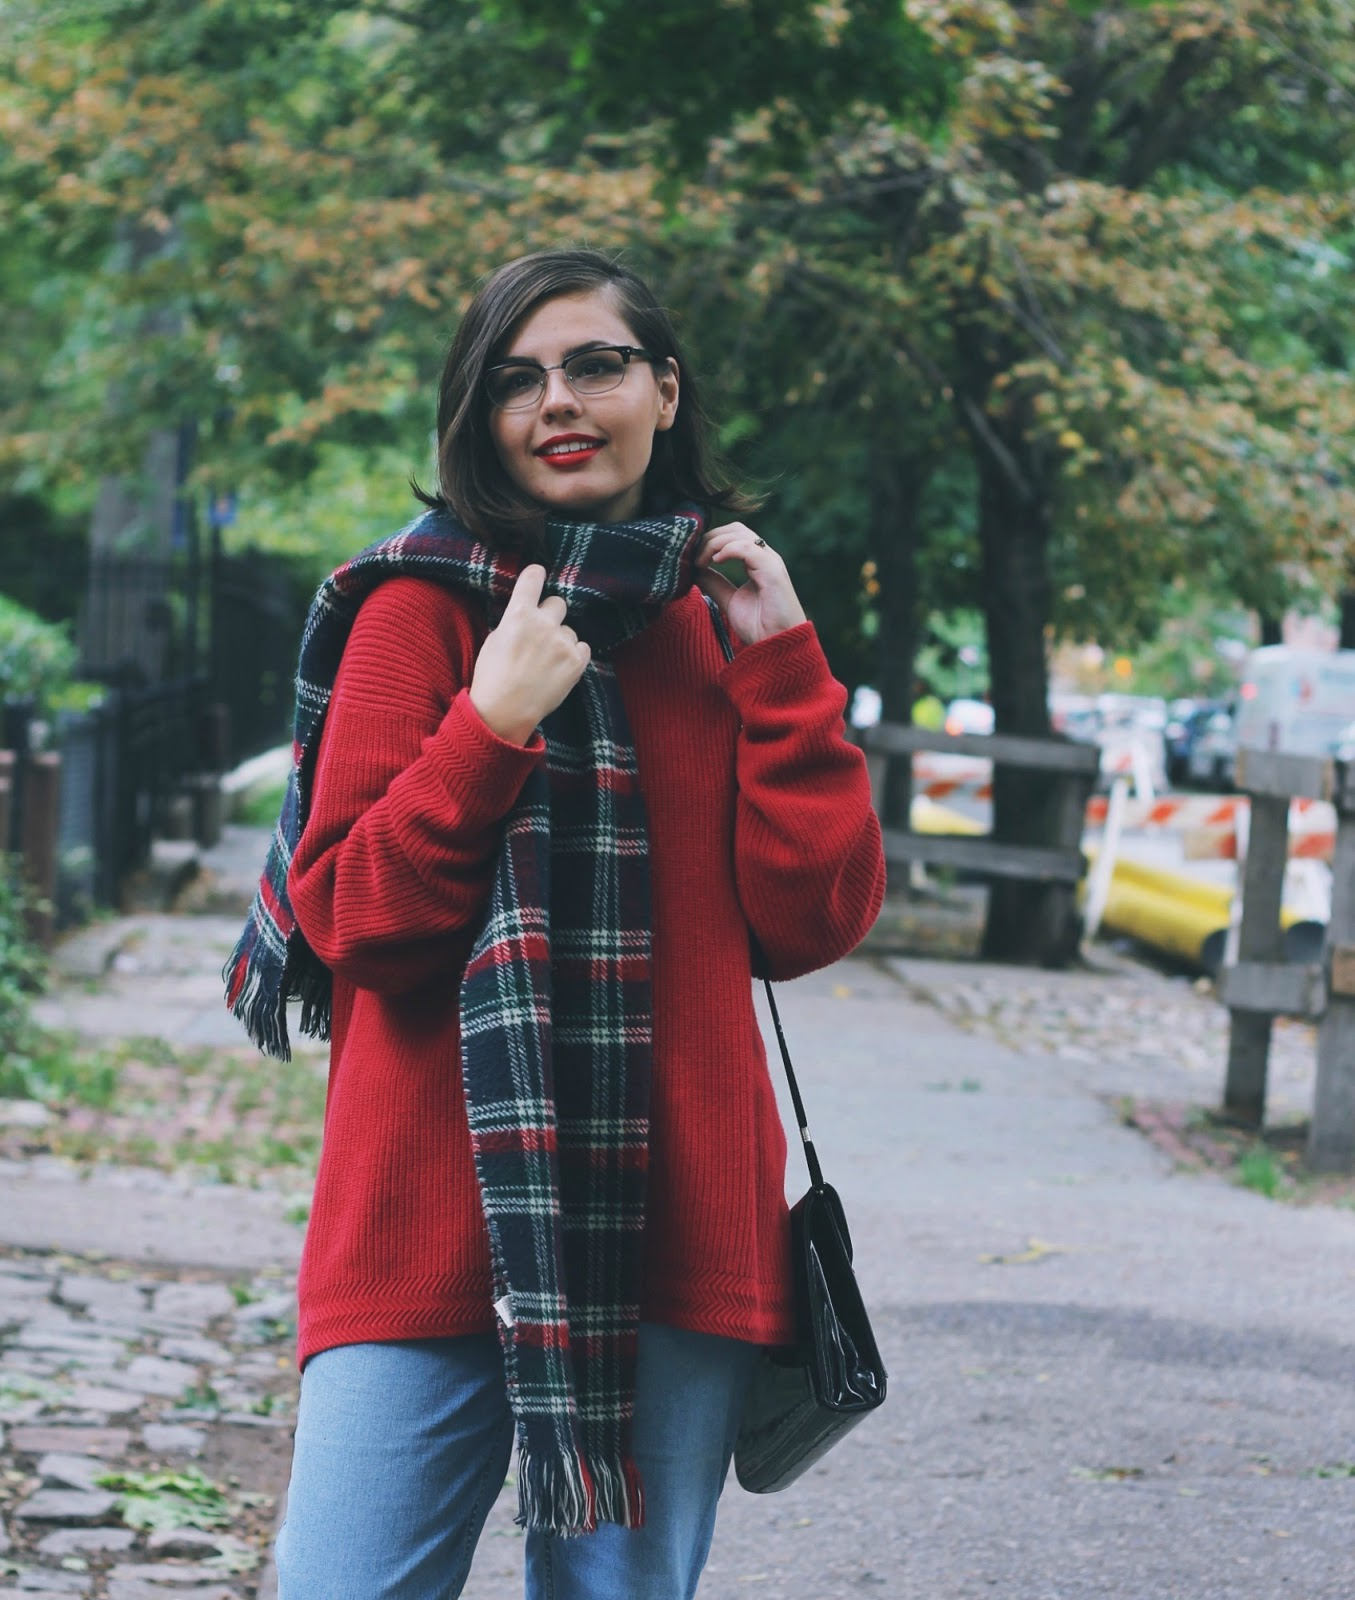 Fall Outfit with Plaid Scarf